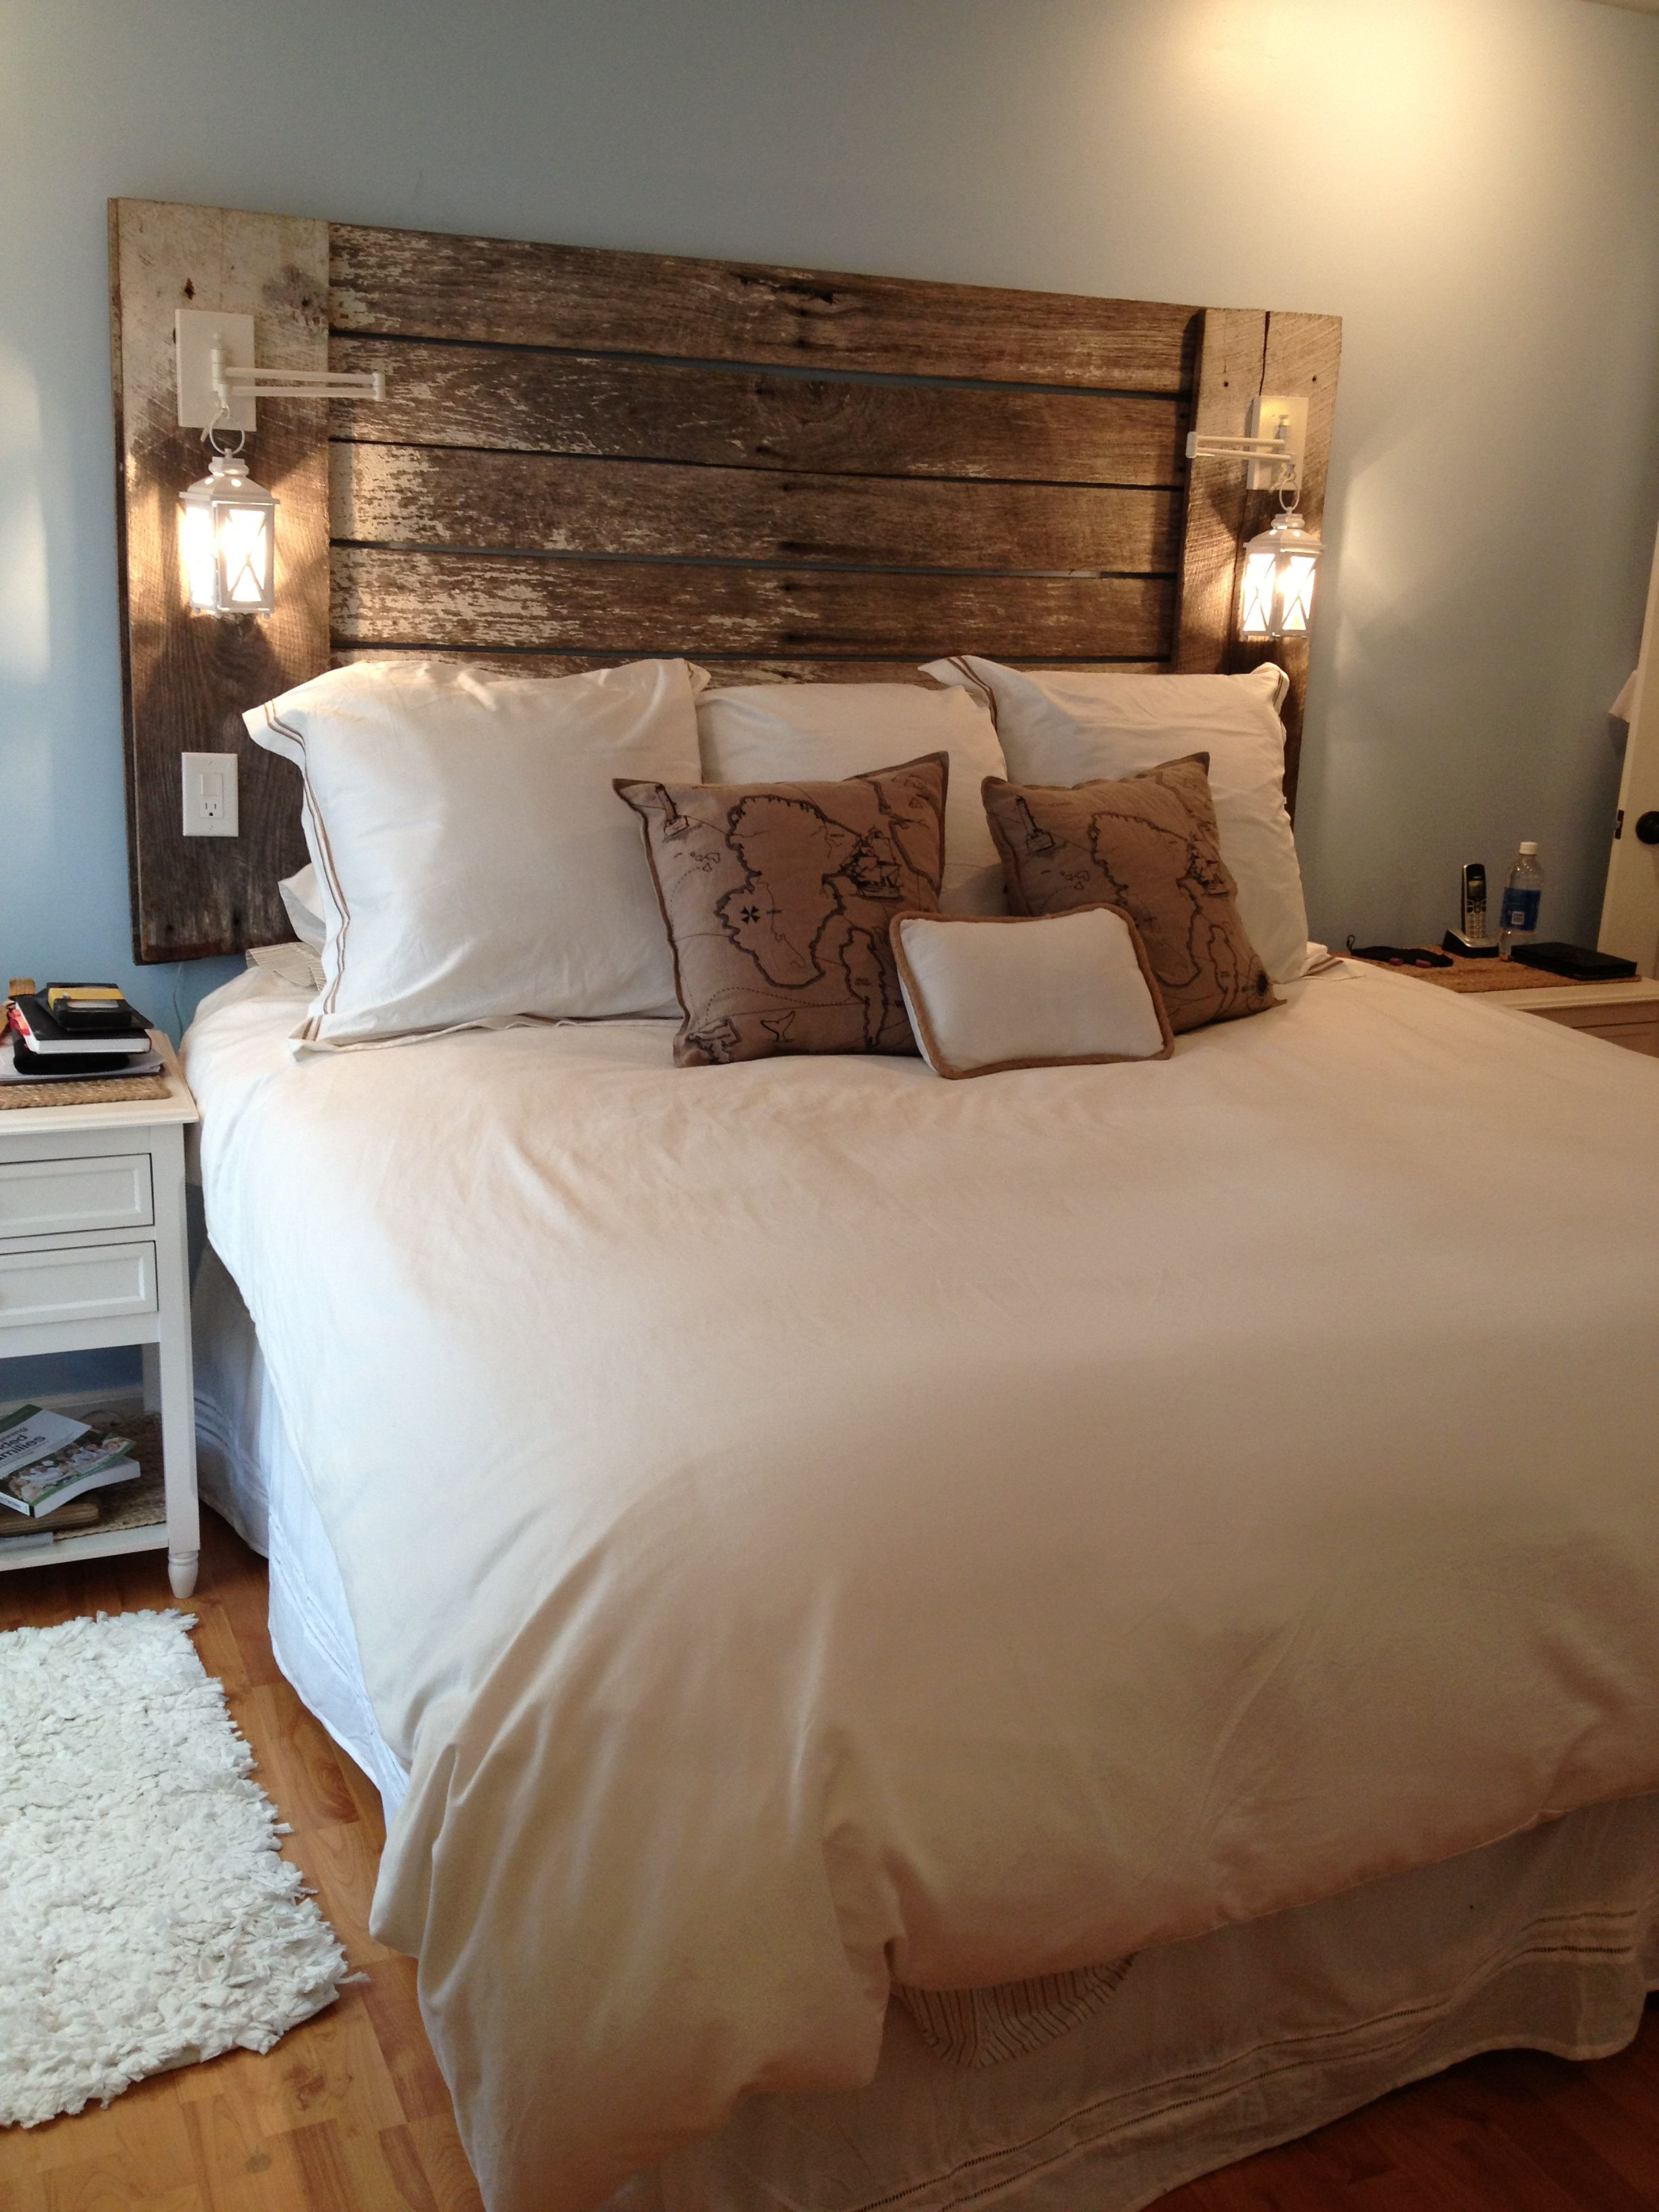 The Headboard My Husband Made Me Out Of Reclaimed Barn Lumber And Candle  Lanterns. Love